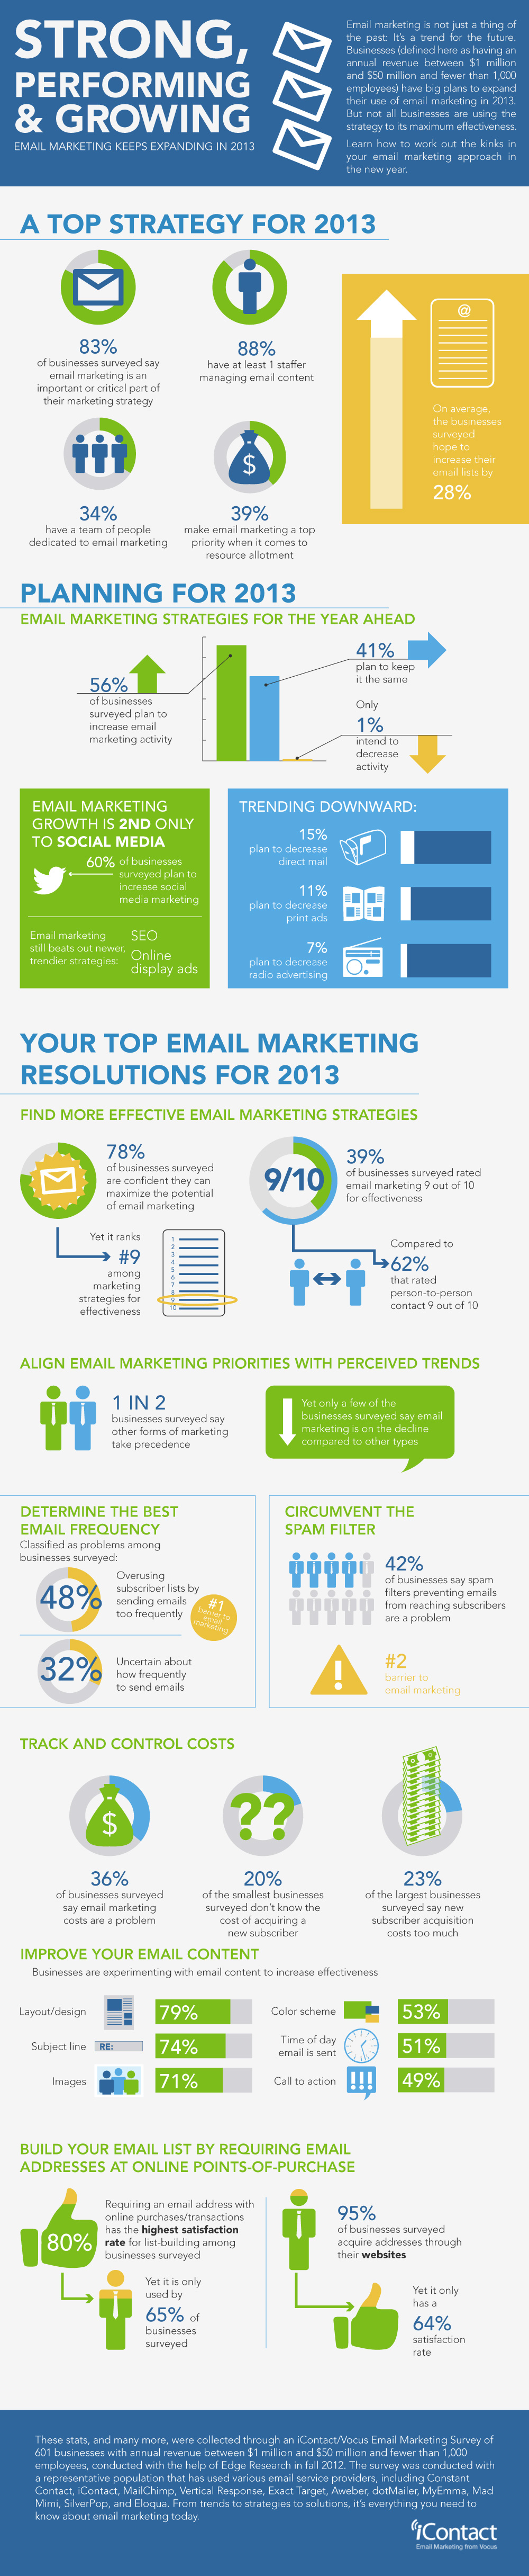 iContact survey results: Email marketing campaigns